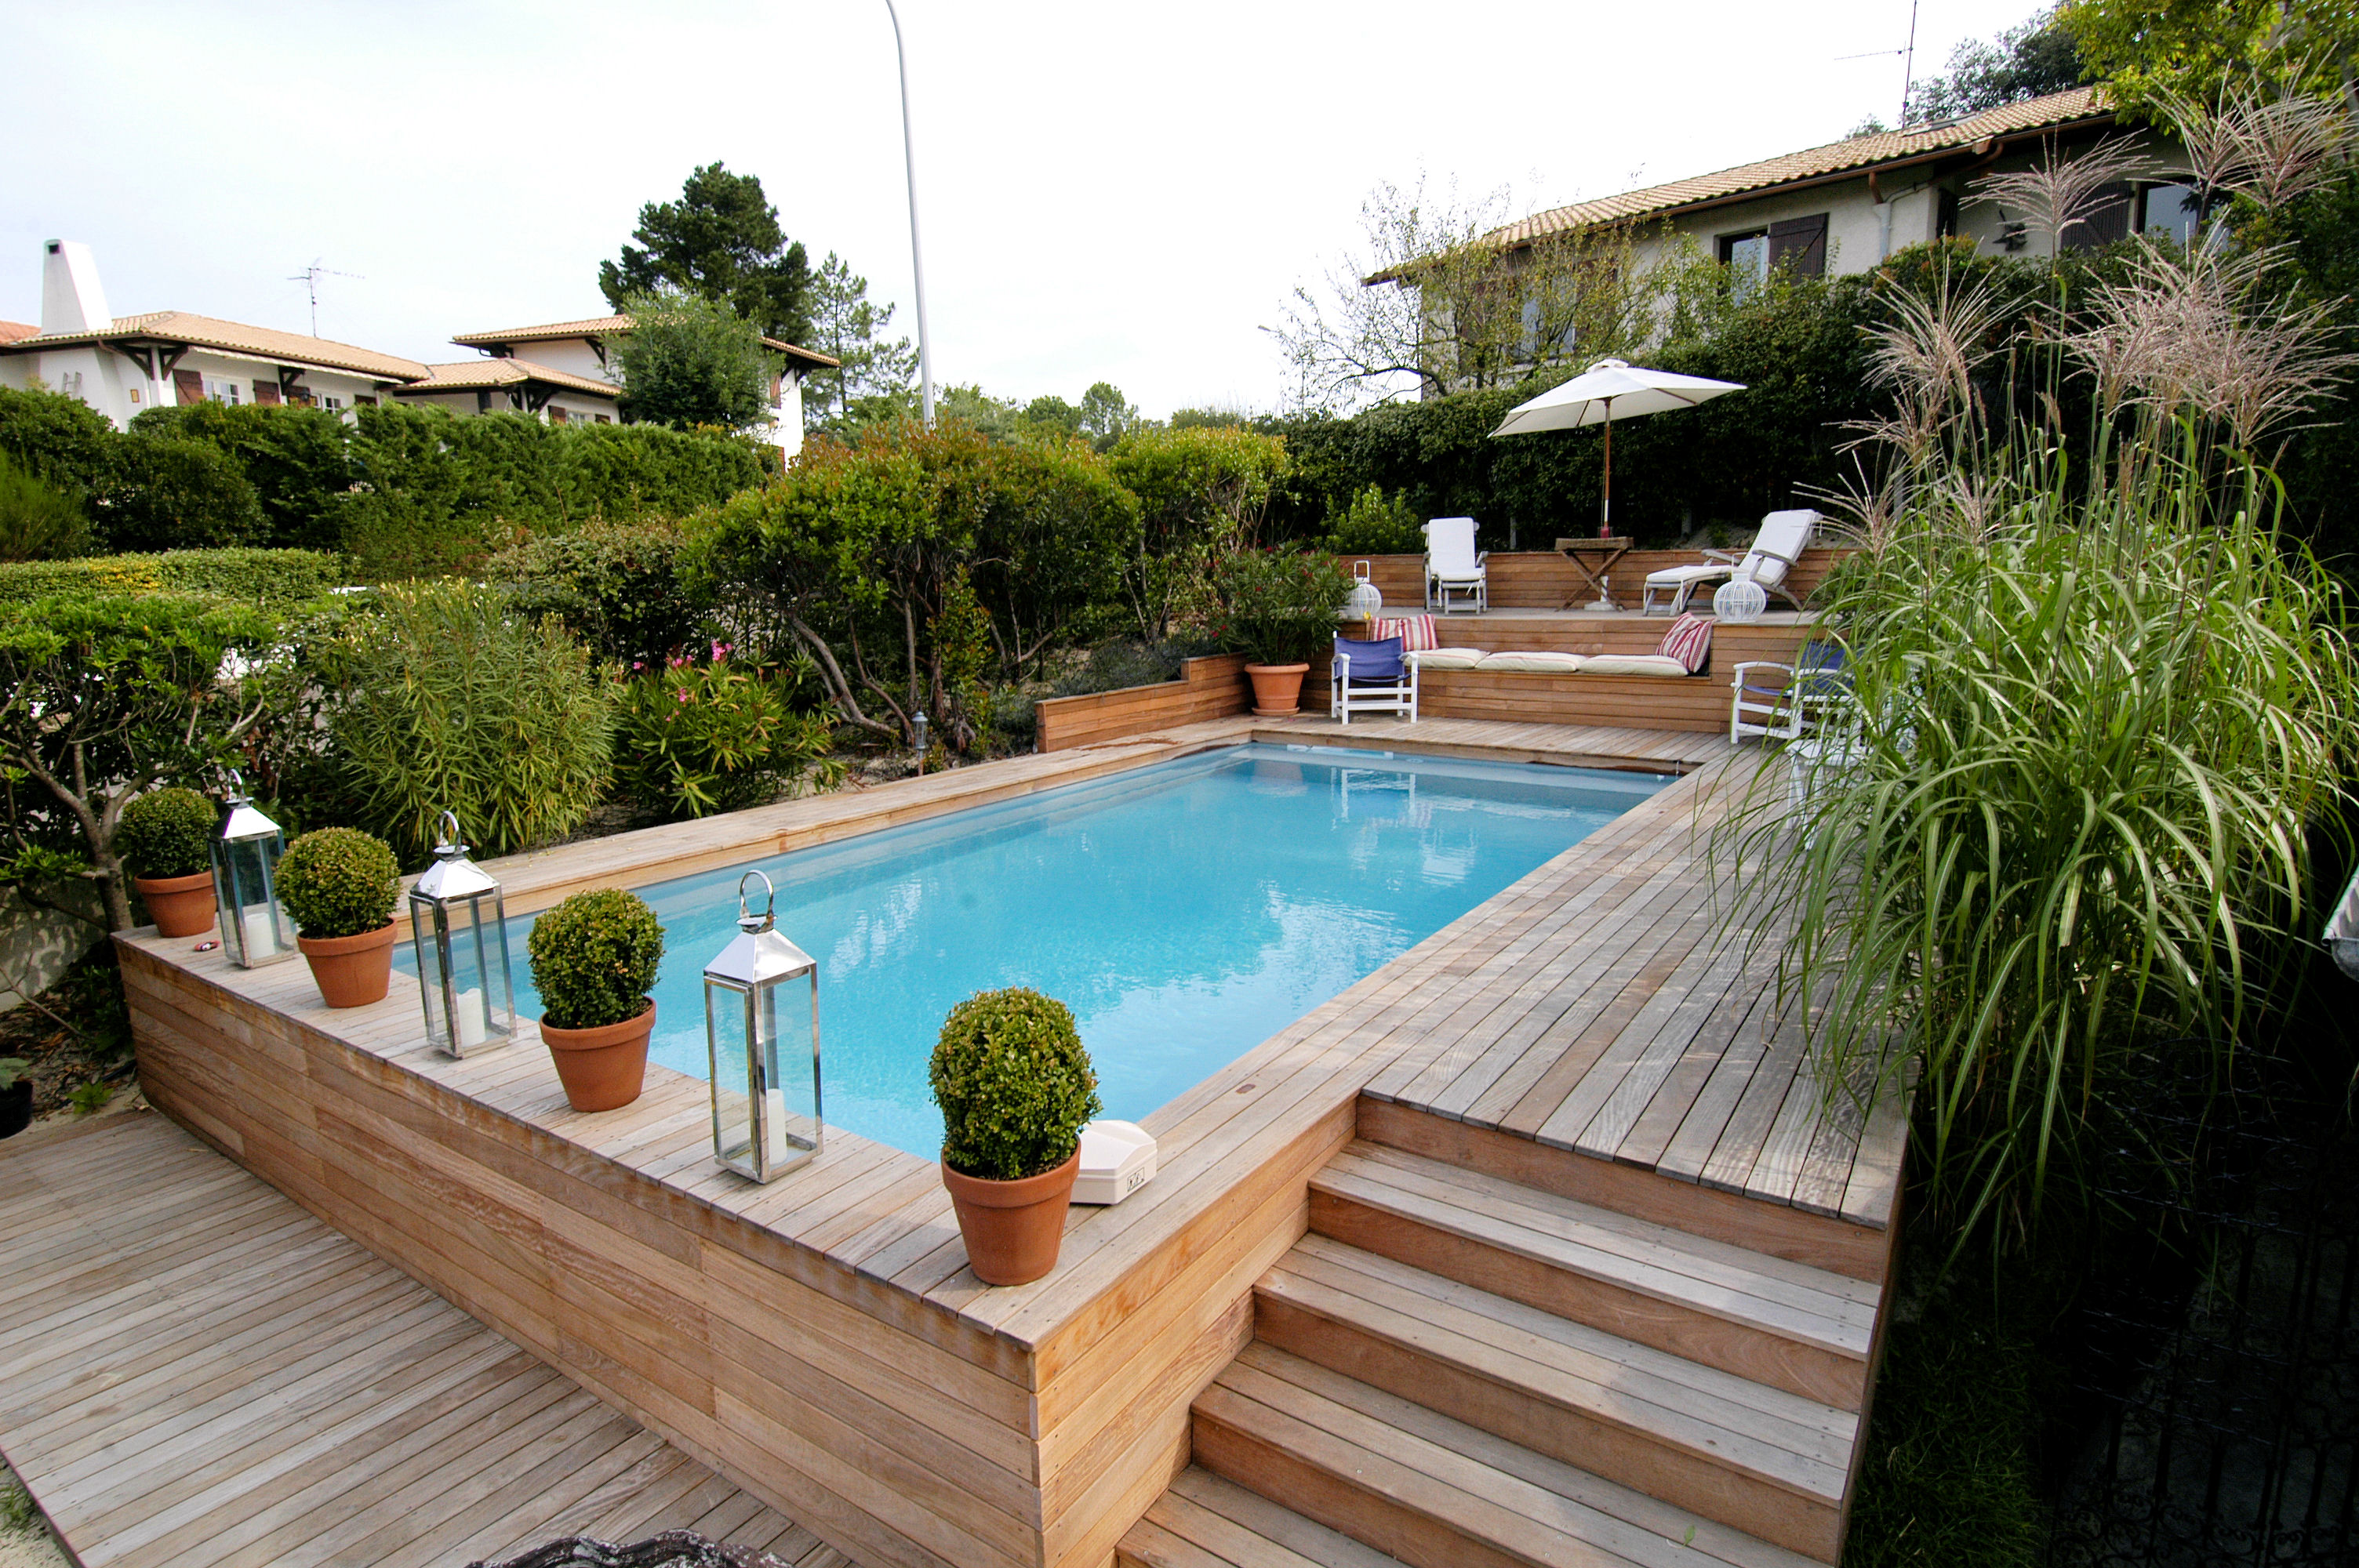 Piscine bois semi enterree for Piscine en bois a enterrer